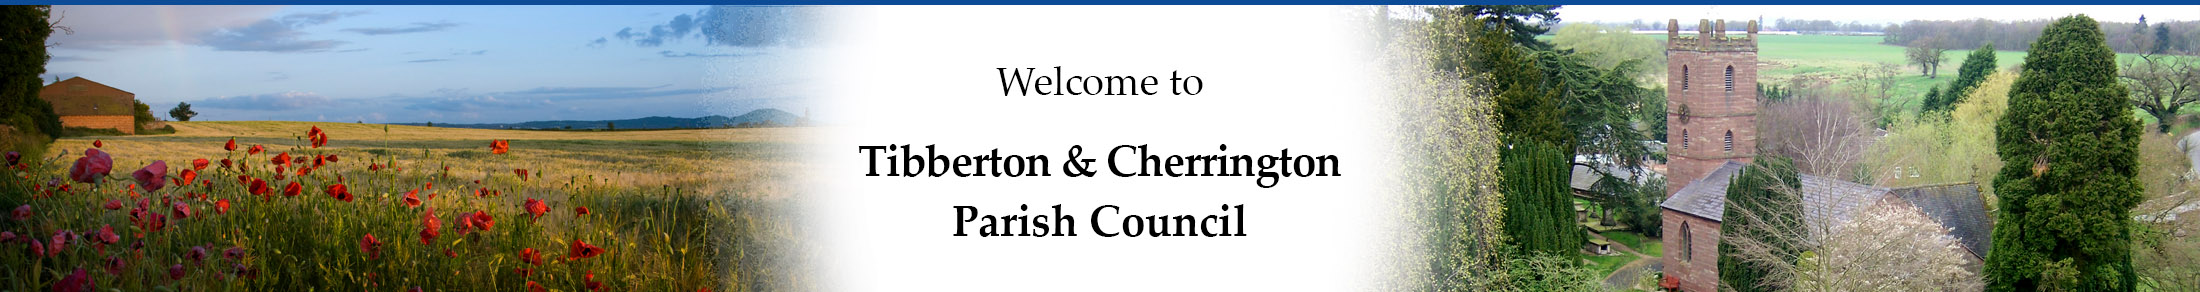 Header Image for Tibberton and Cherrington PC